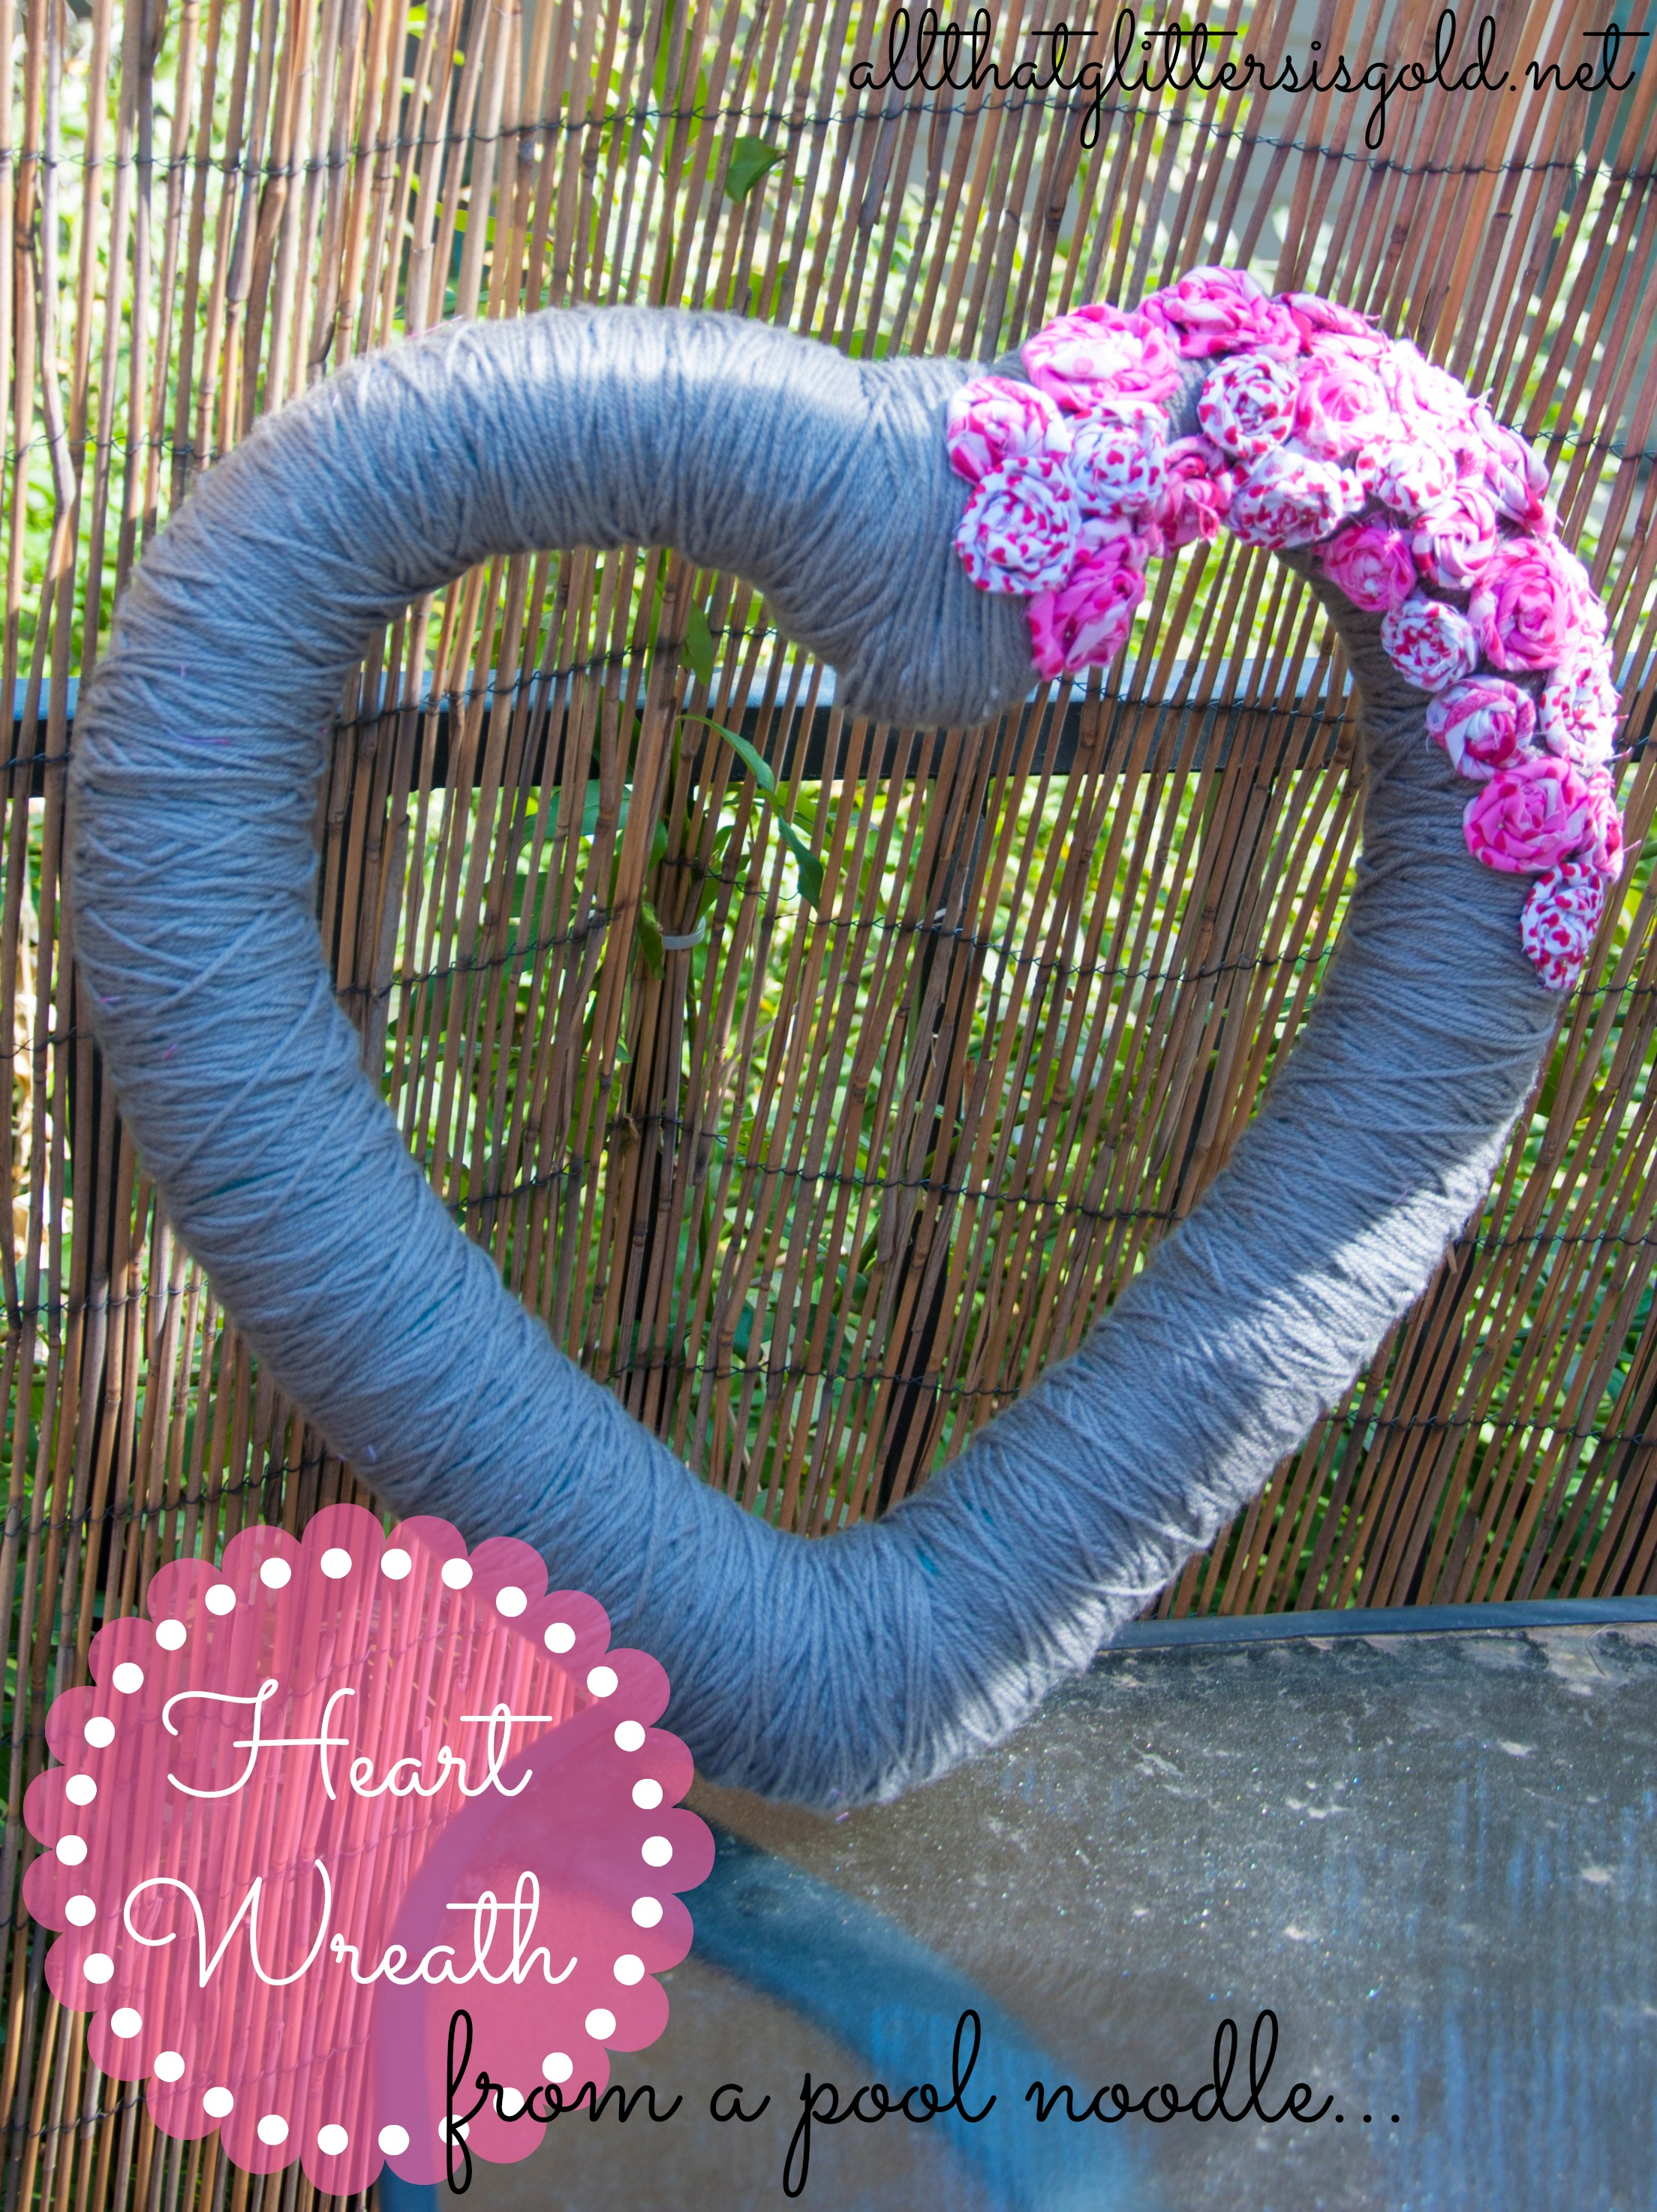 heart wreath from a pool noodle